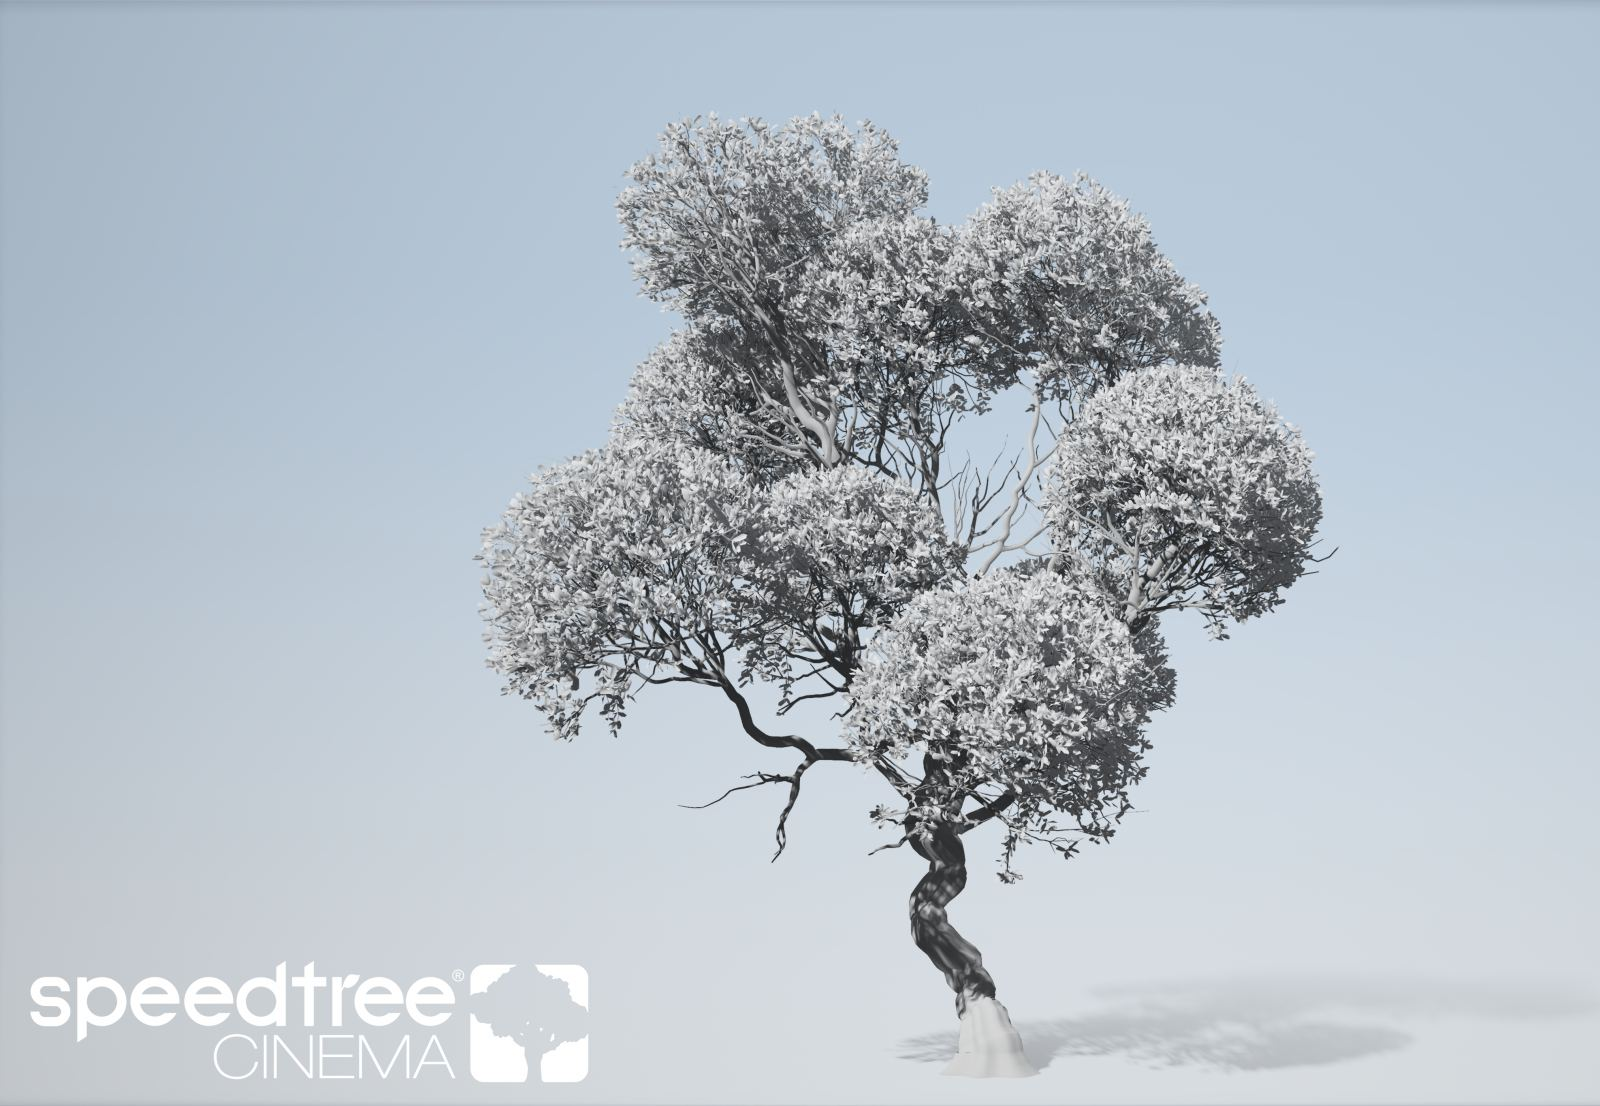 SpeedTree Cinema 8 Out Now | Computer Graphics Daily News